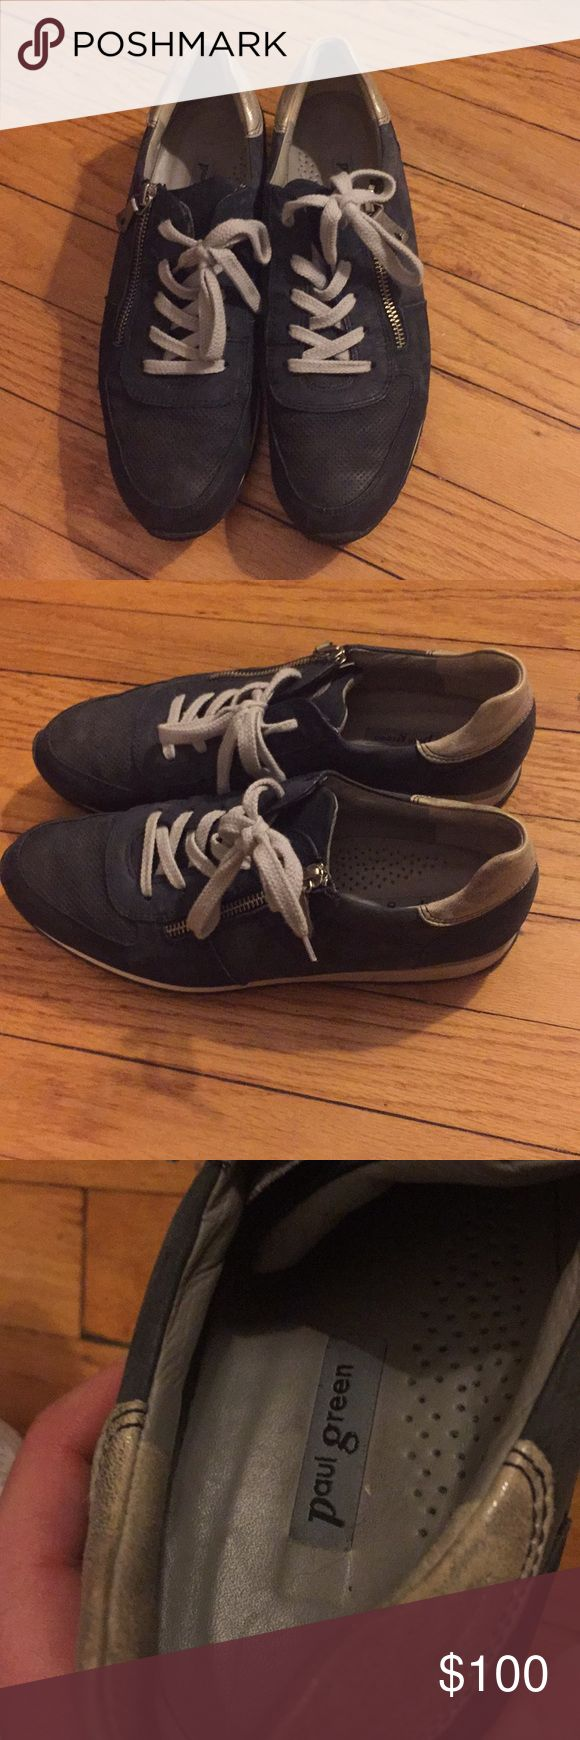 Paul Green Blue Althletic Shoes Size 9 Awesome navy blue Paul Green athletic shoe with zippers. Minimally worn. In great condition. These shoes are great for anyone who wants stylish shoes with orthopedic type support. Paul Green Shoes Athletic Shoes